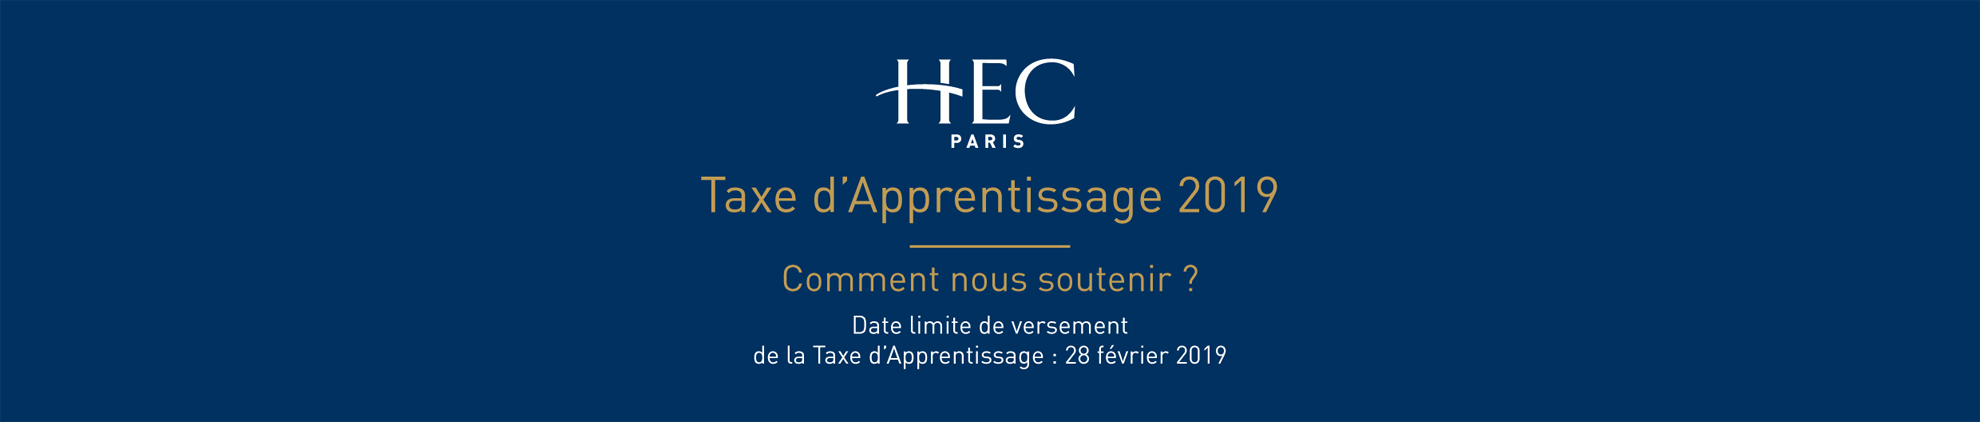 Taxe d'apprentissage HEC Paris 2018